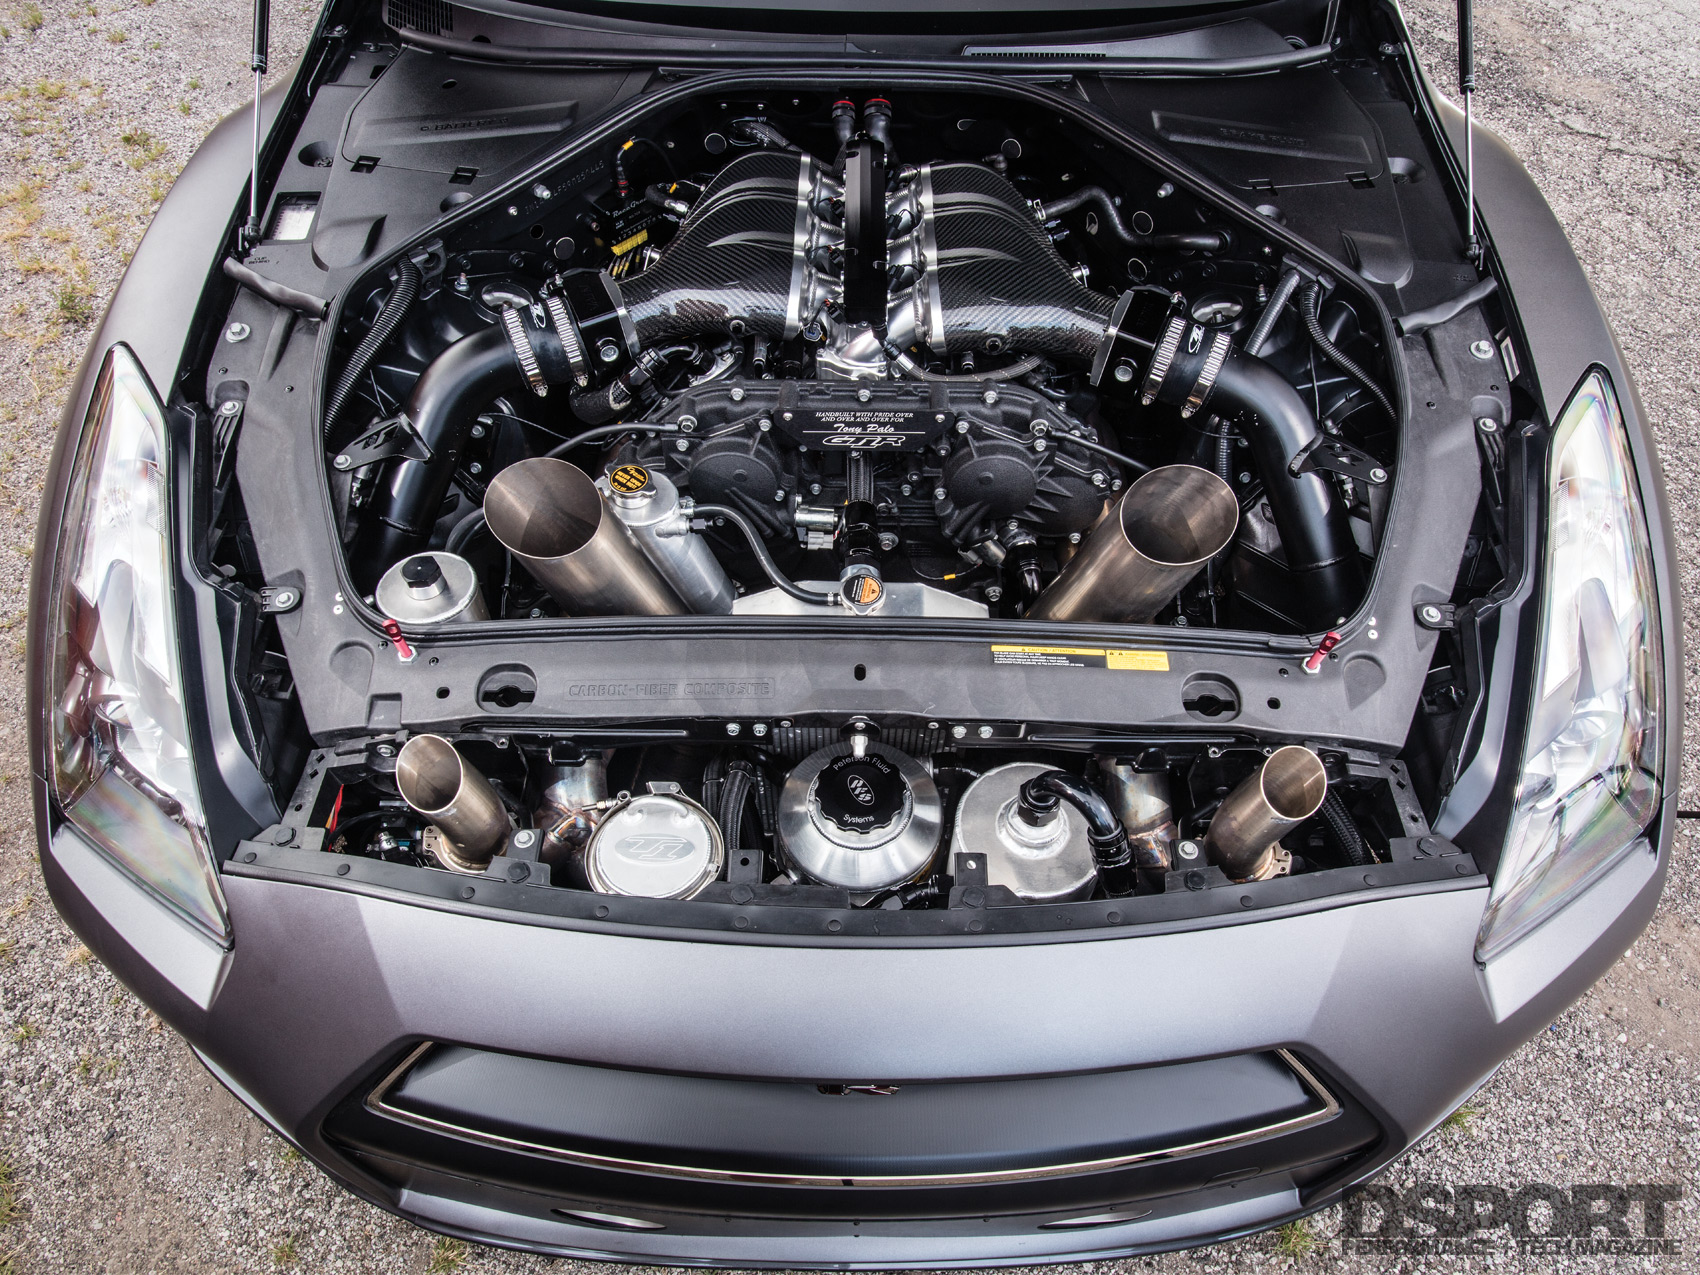 T1 GTR Engine Bay